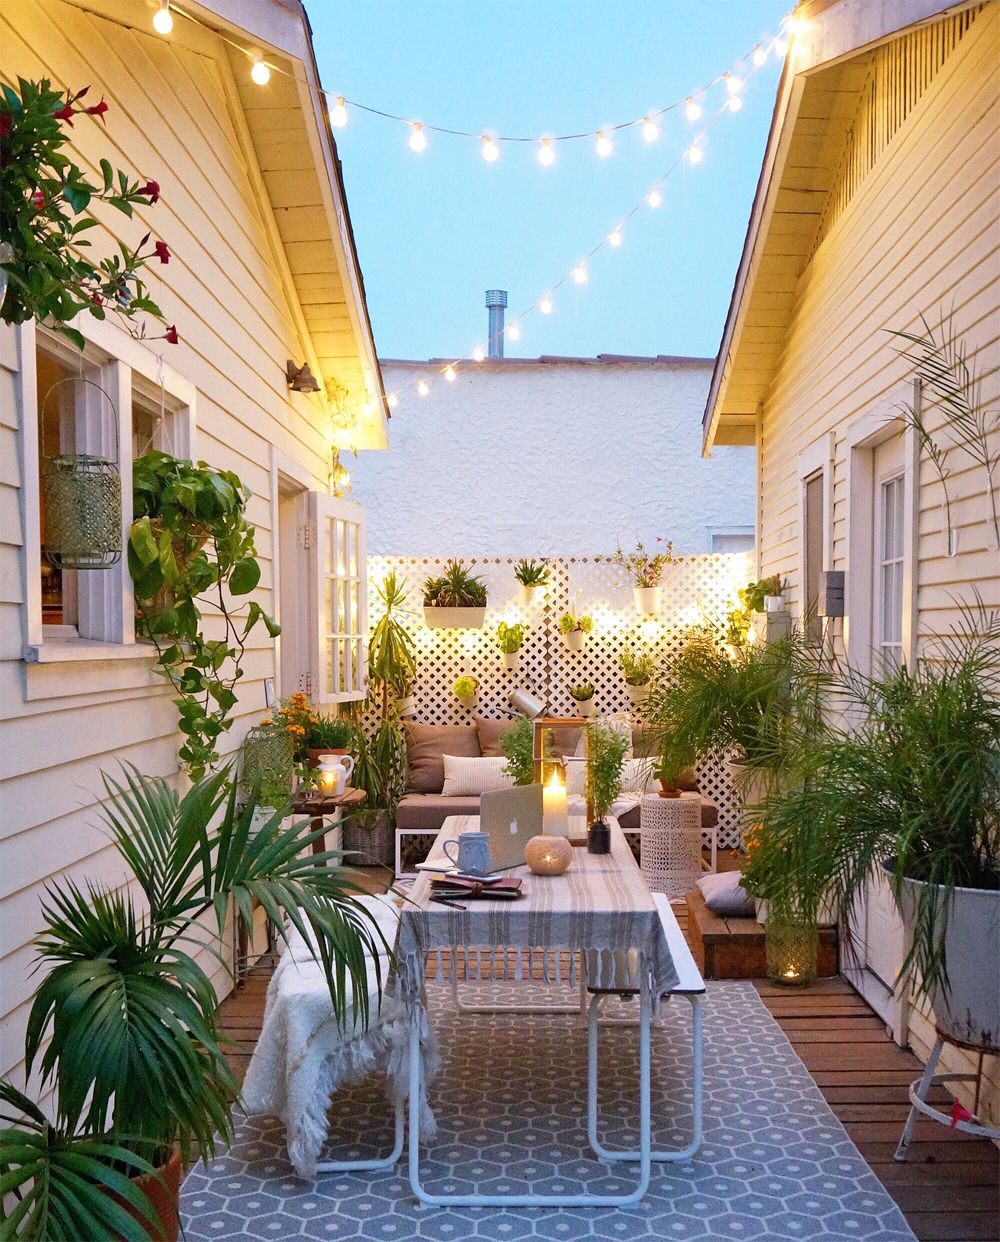 11 Small Deck Ideas For Summer 2020